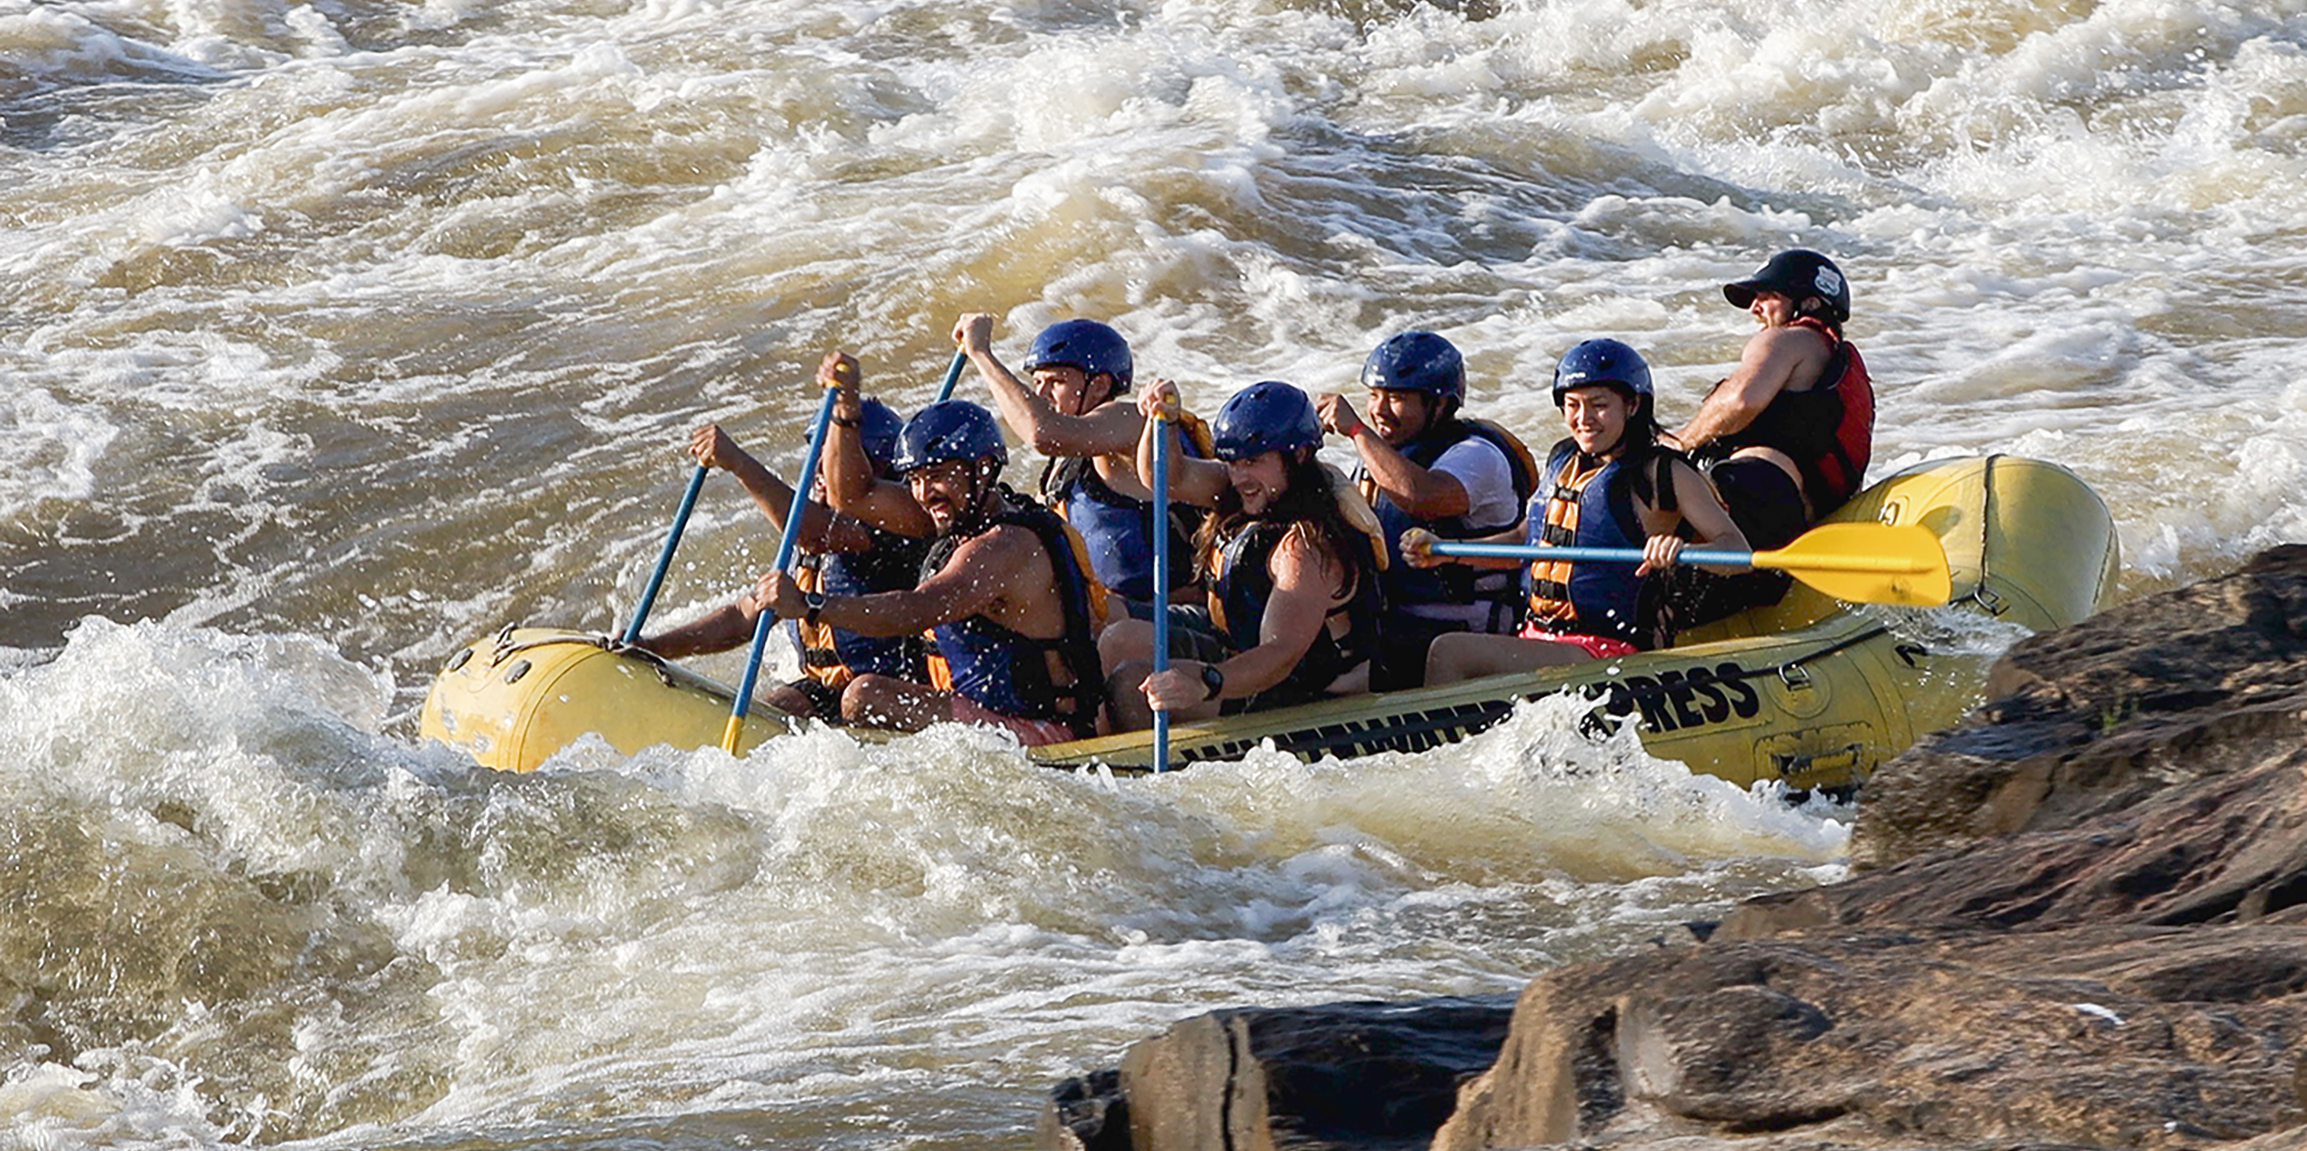 WHITEWATER RAFTING -